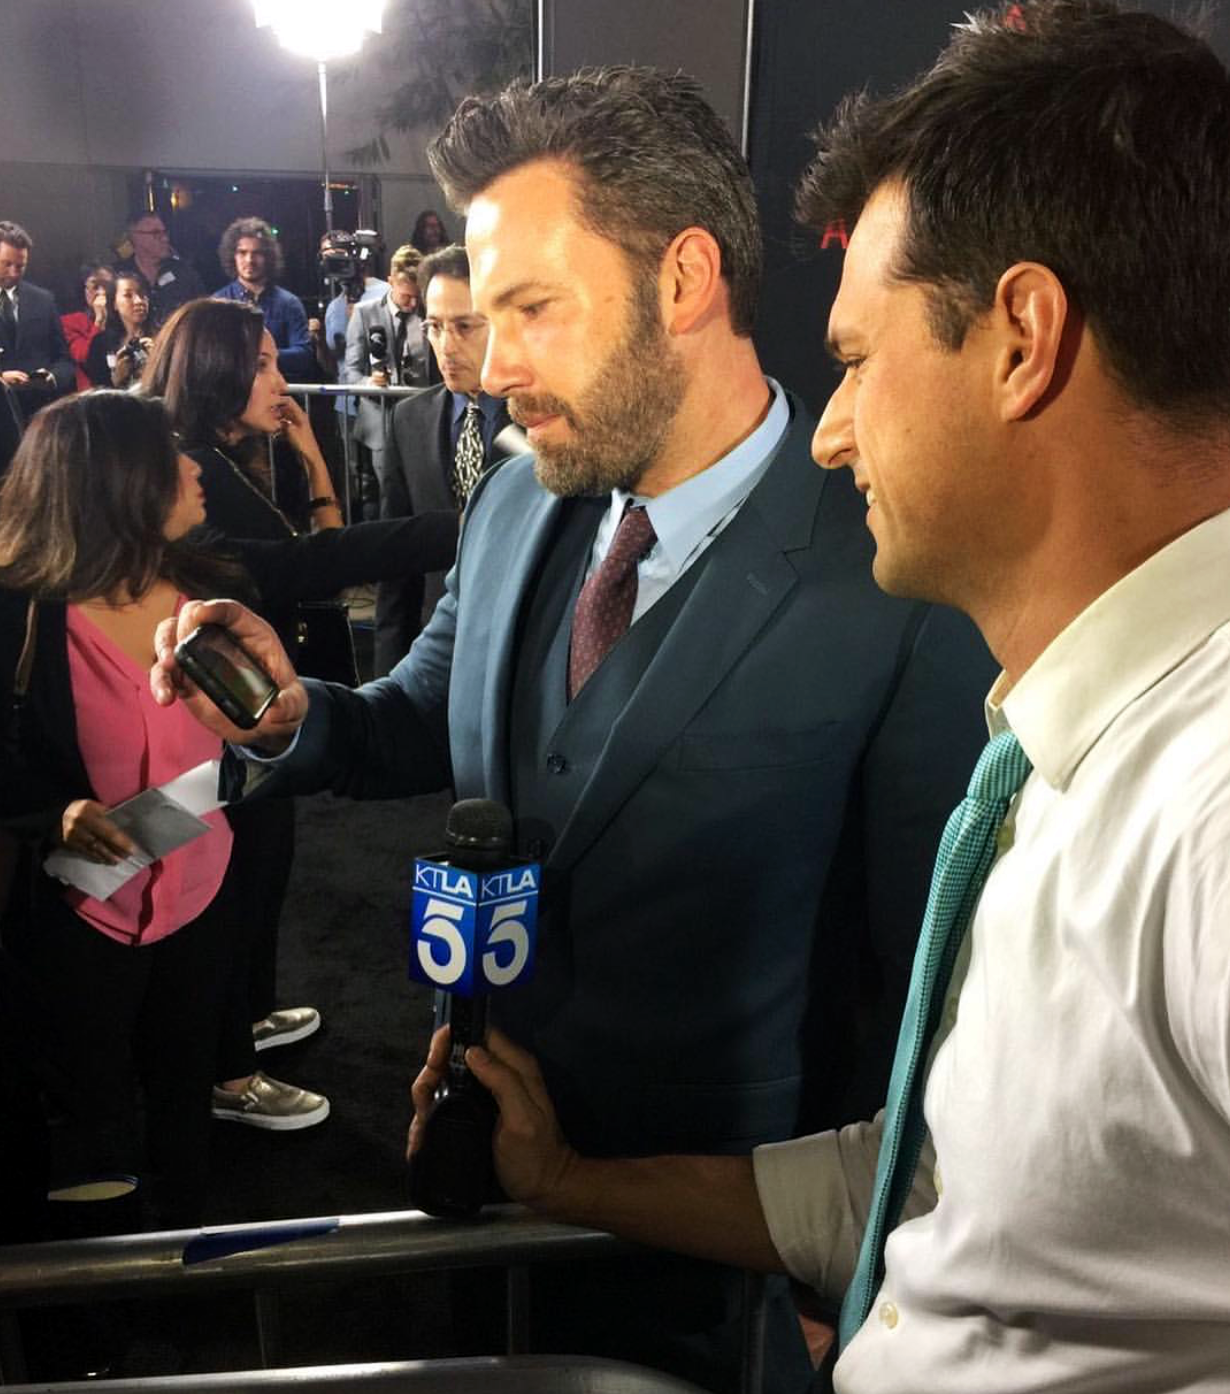 the-accountant-movie-premiere-la-ben-affleck